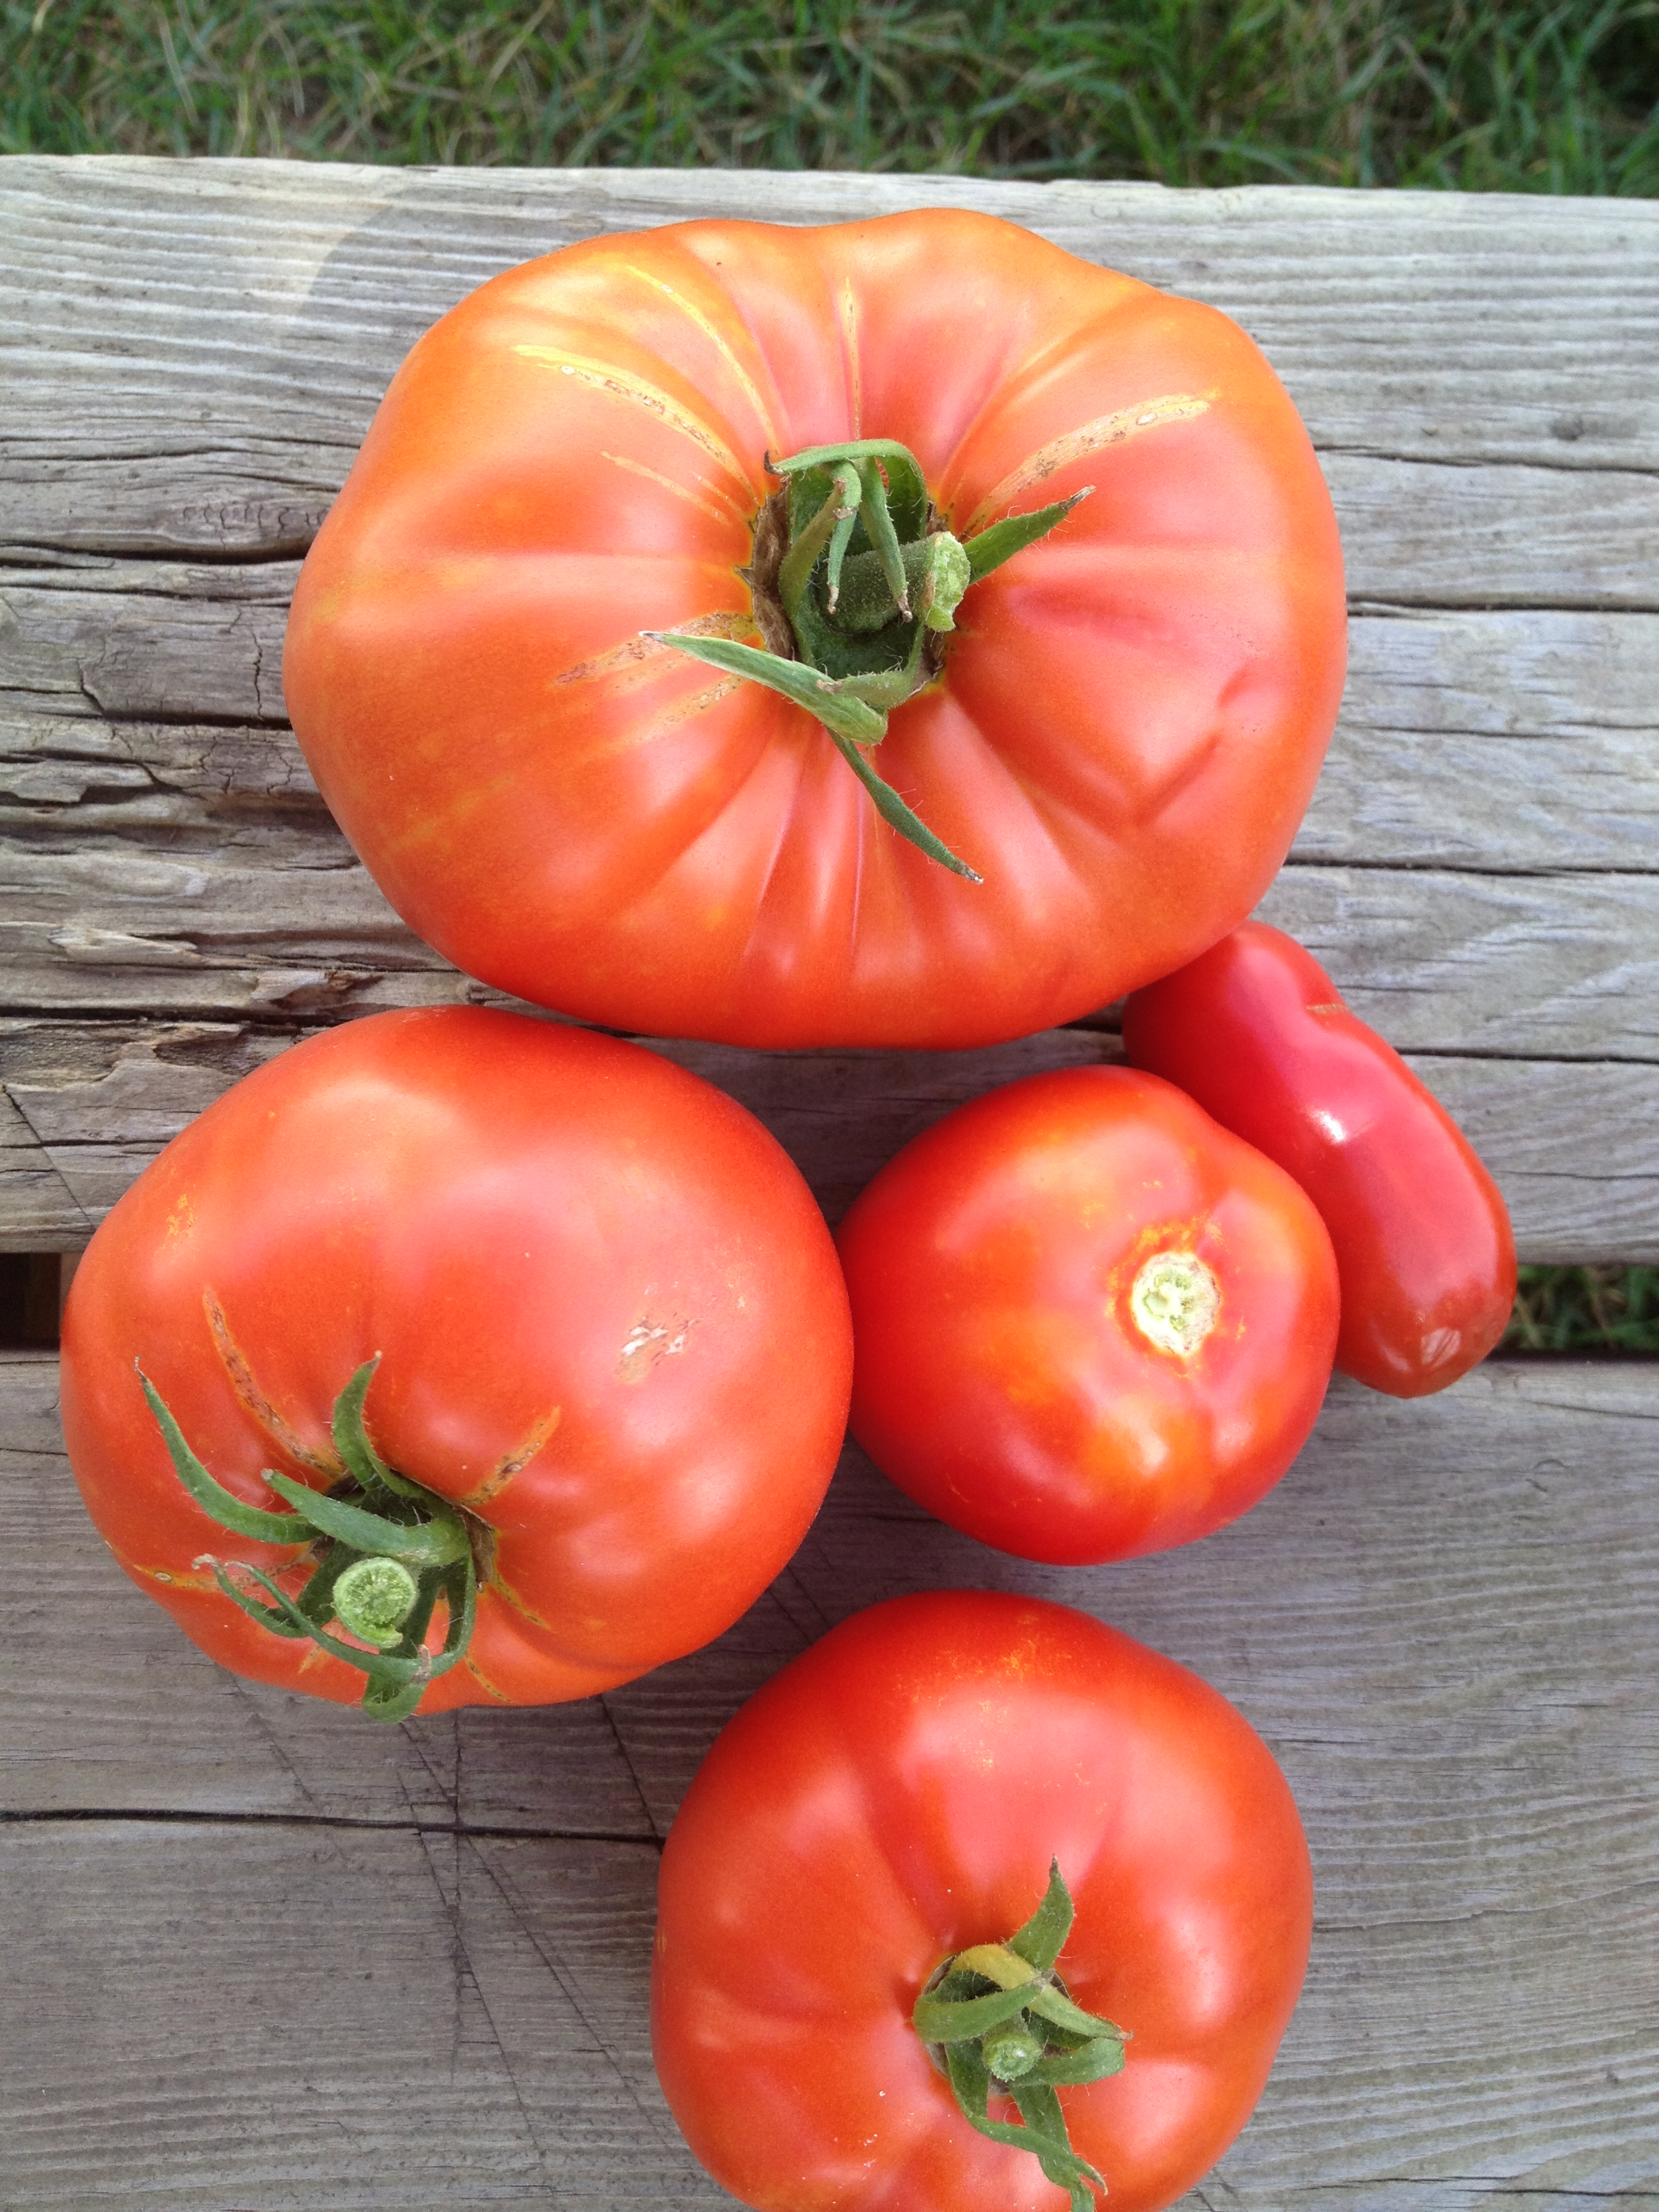 Tomatoes by Whitney Miller